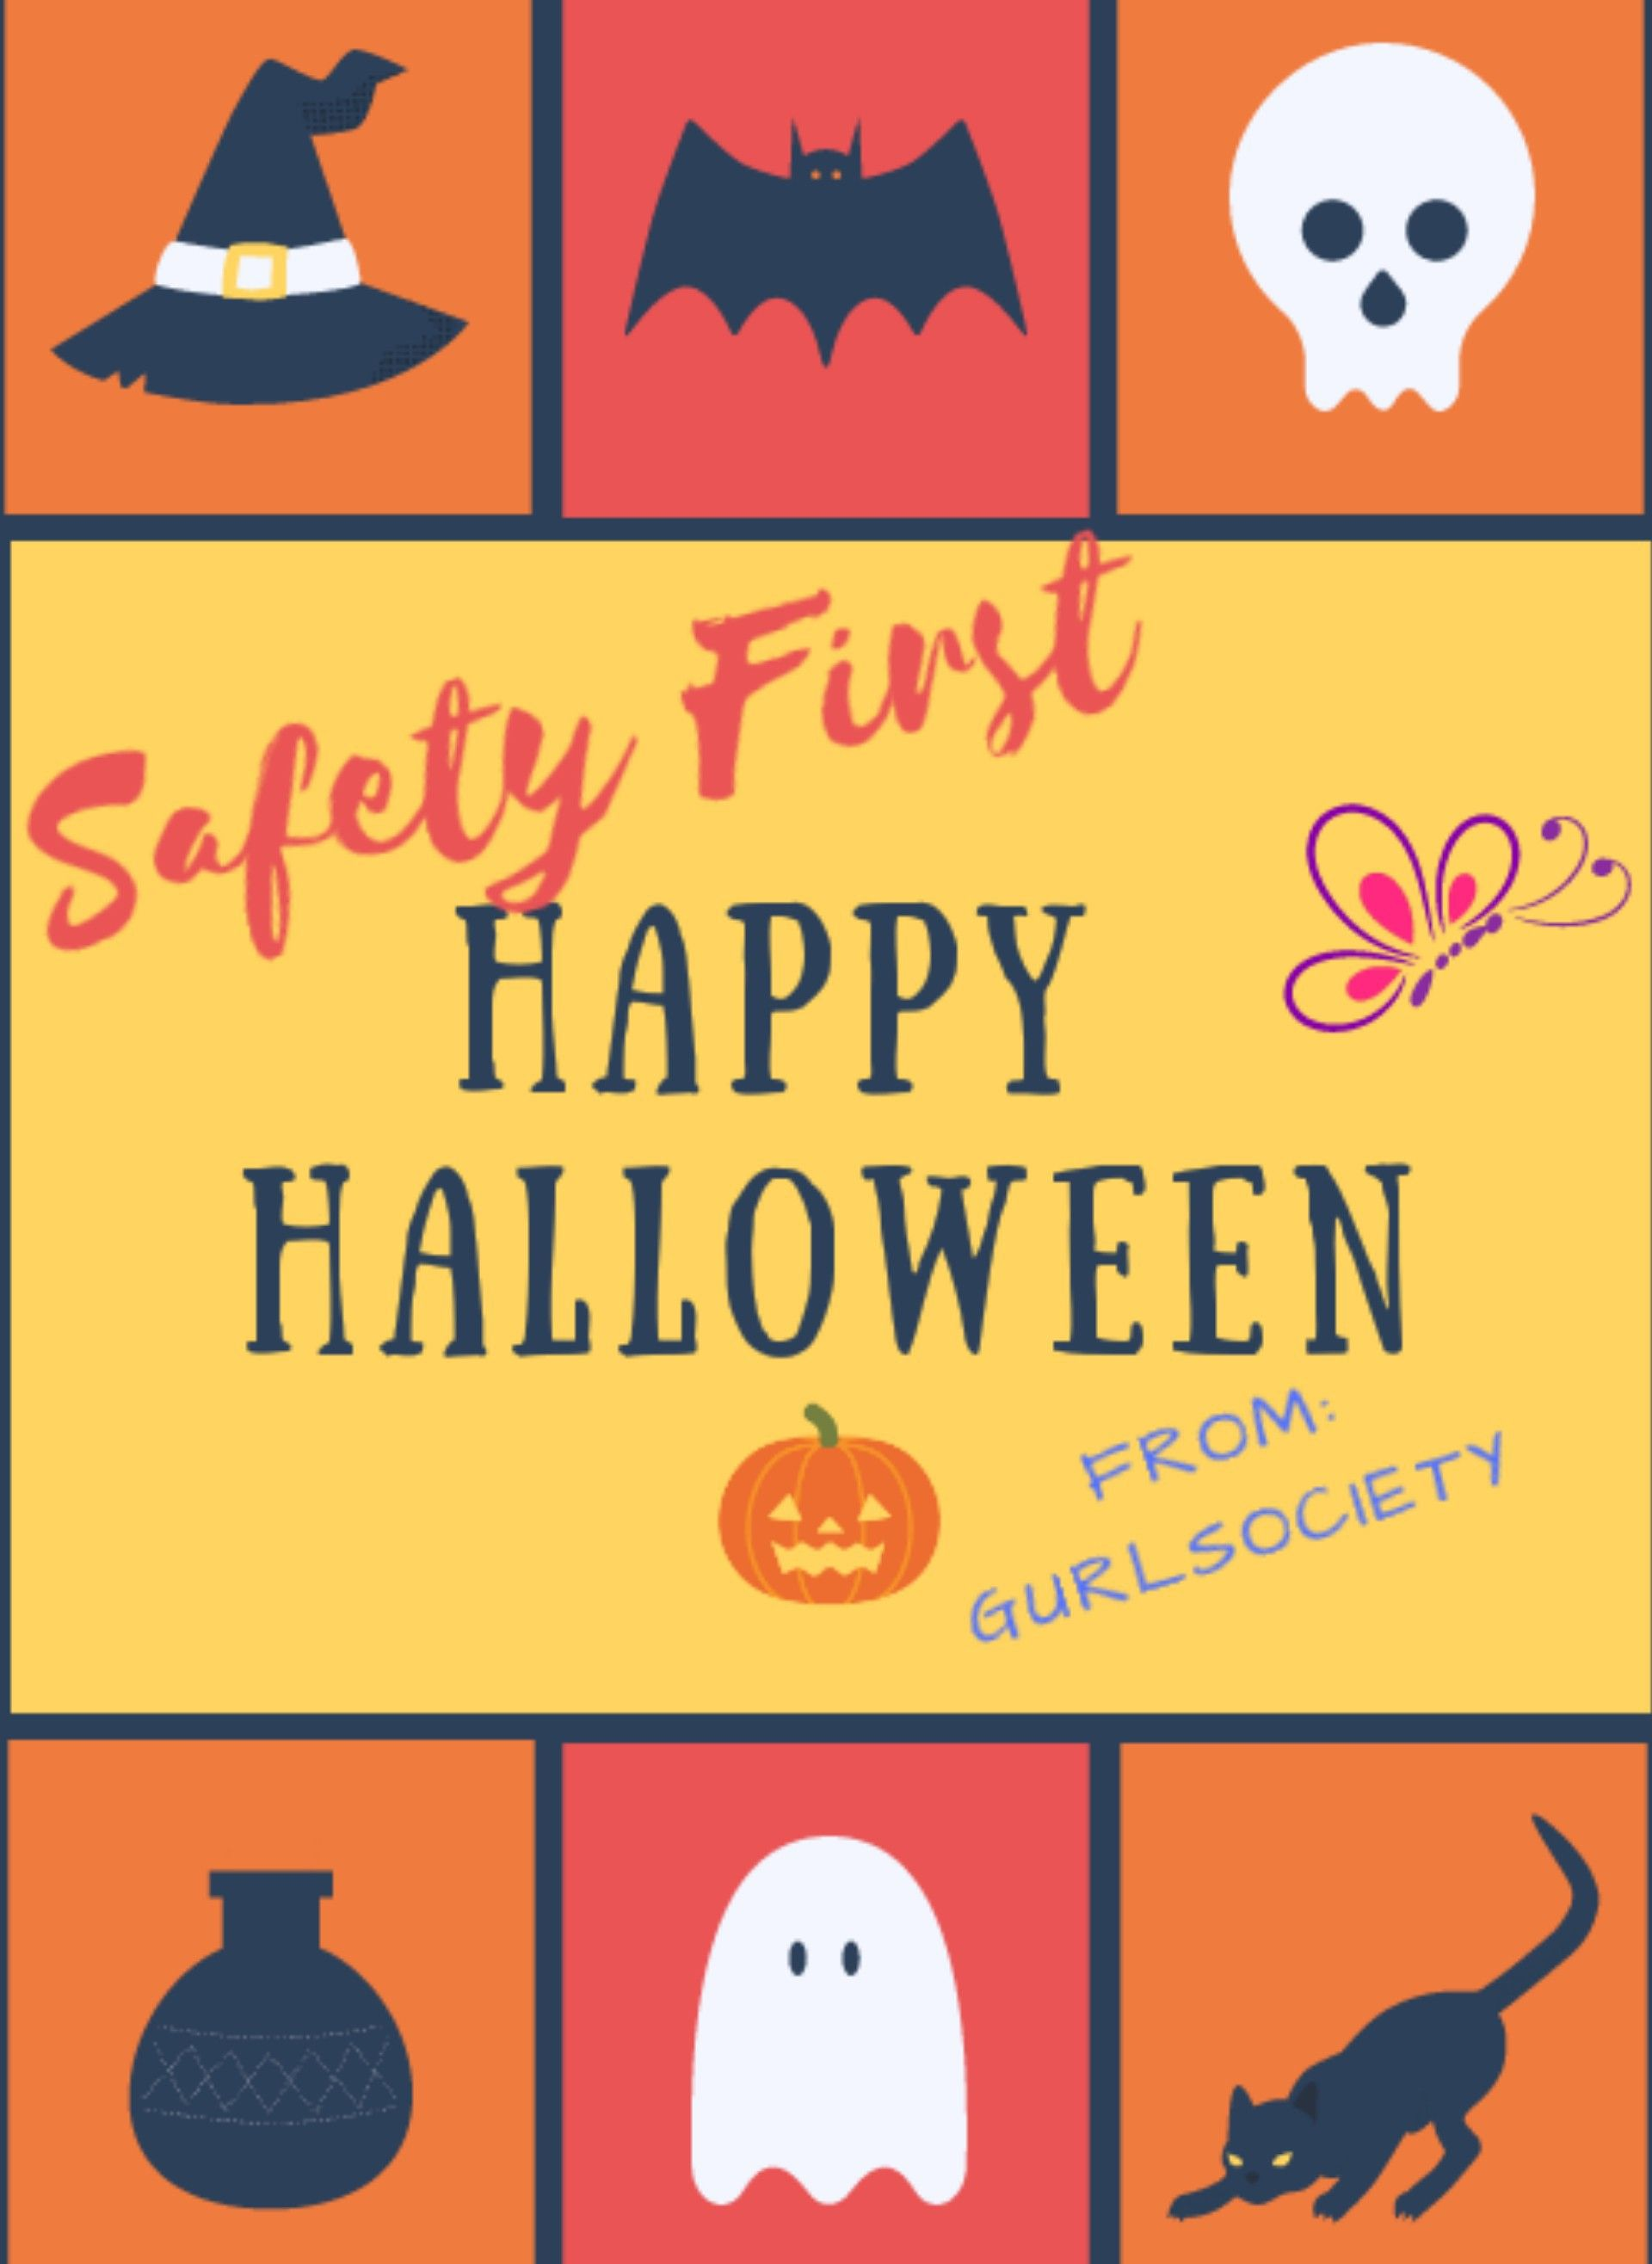 Halloween Safety Tips For Kids Buddy System Never Trick